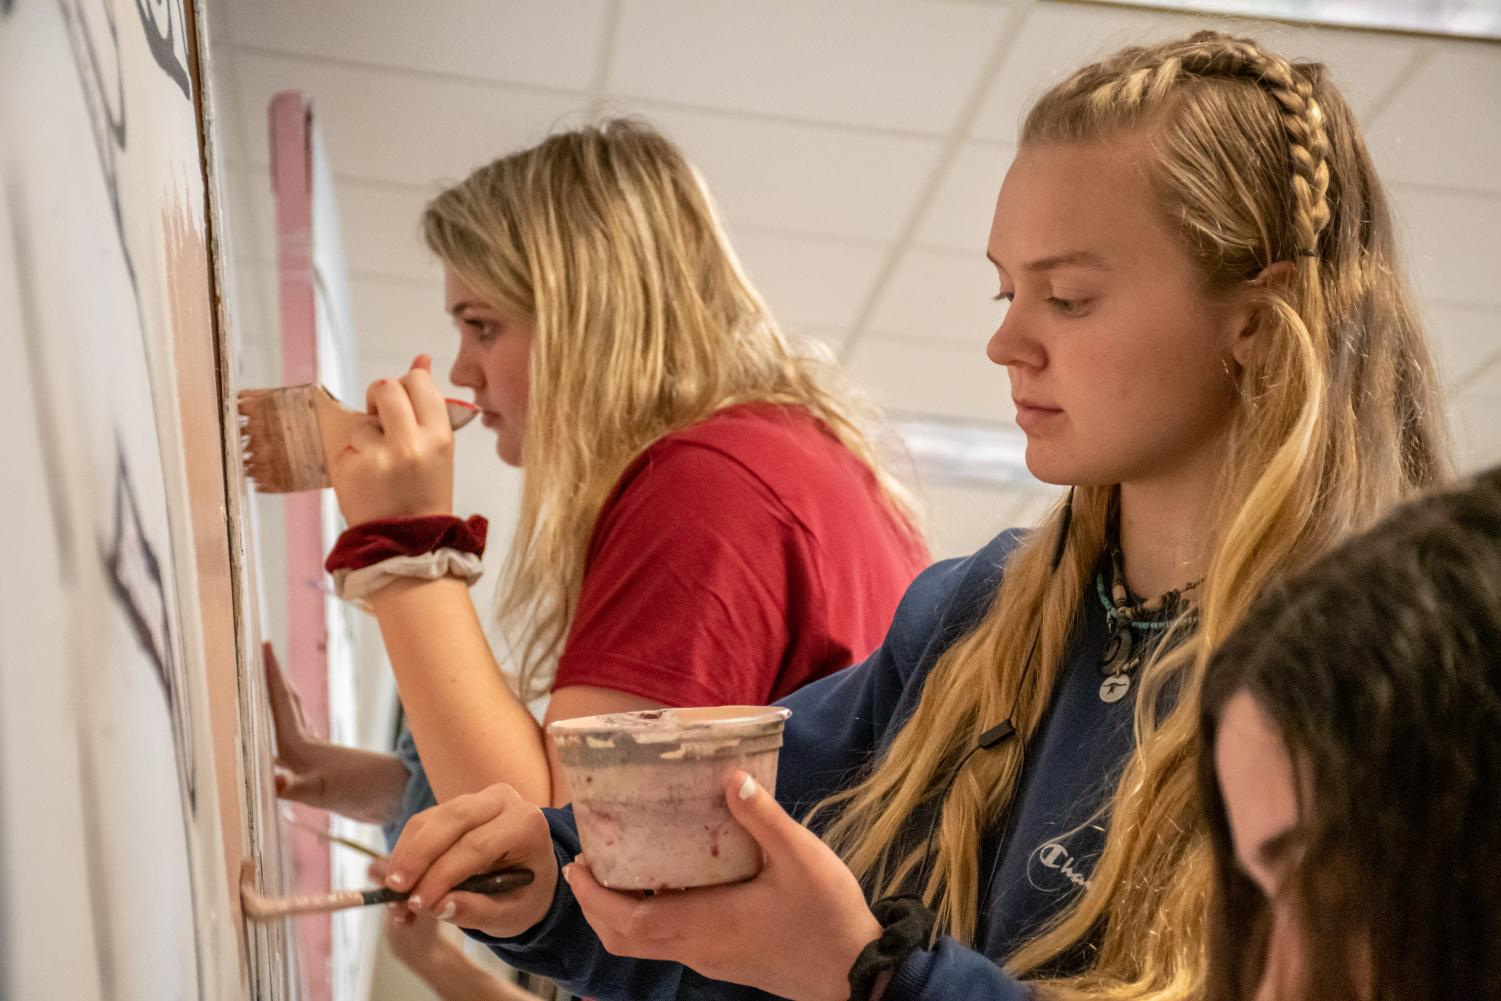 As the spring art show approaches, freshman Colleen Mulligan and sophomore Lauren Decker focus intently to finish their art work.